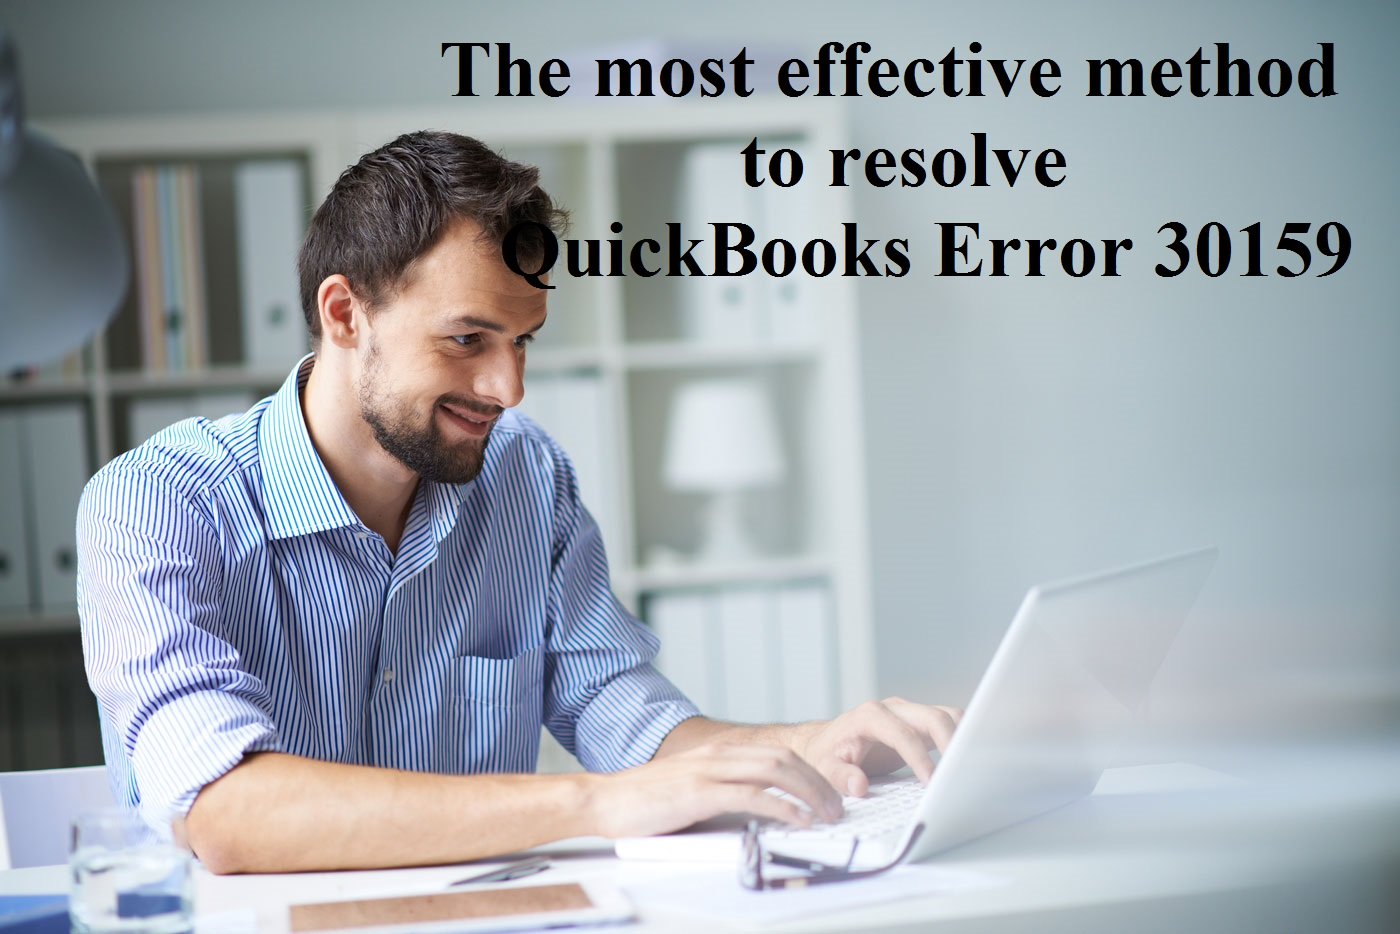 The most effective method to resolve QuickBooks Error 30159